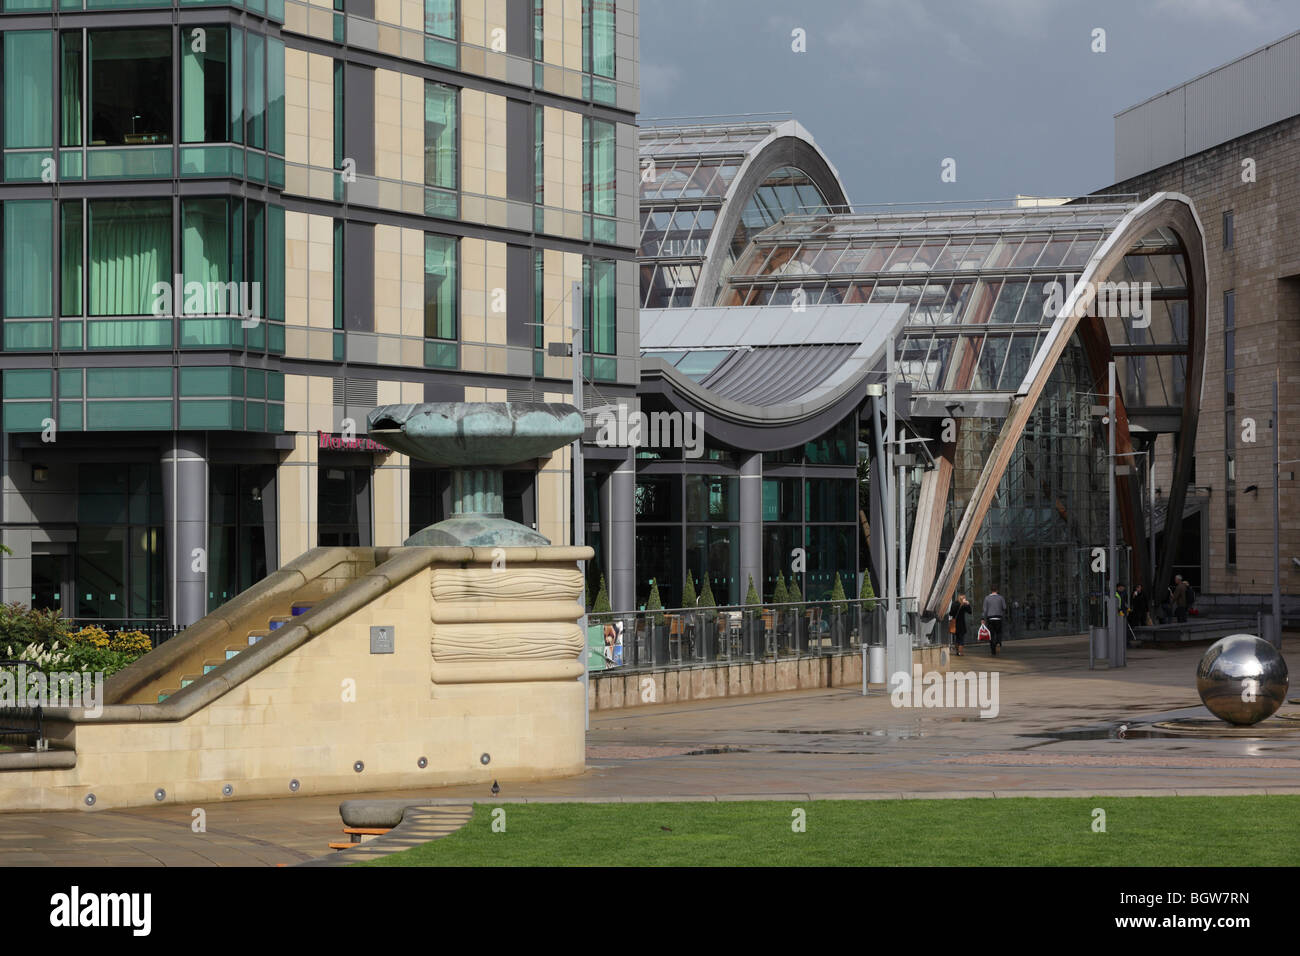 peace garden with mercure hotel and entrance to winter garden